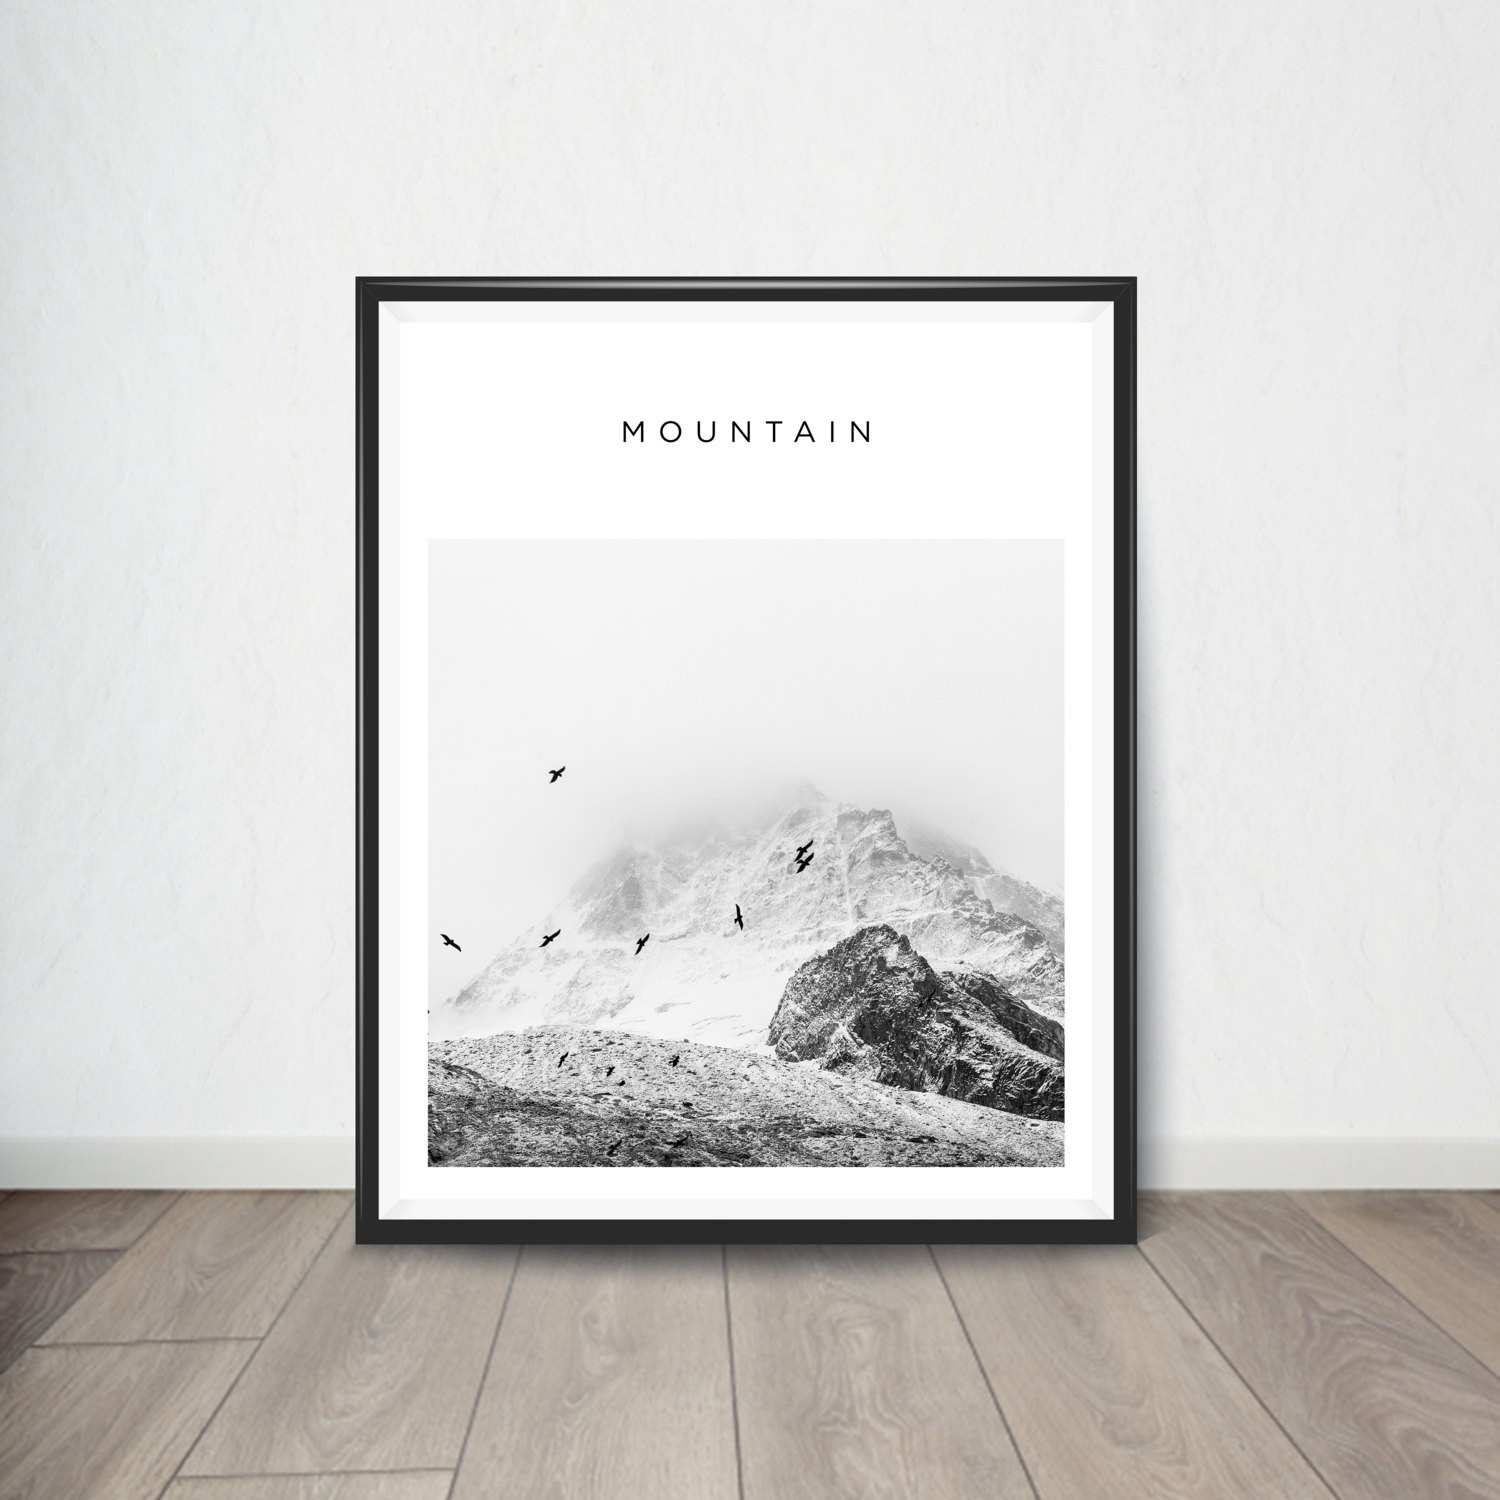 Mountain Print Minimalist Wall Art Black And White Mountain Super Tech